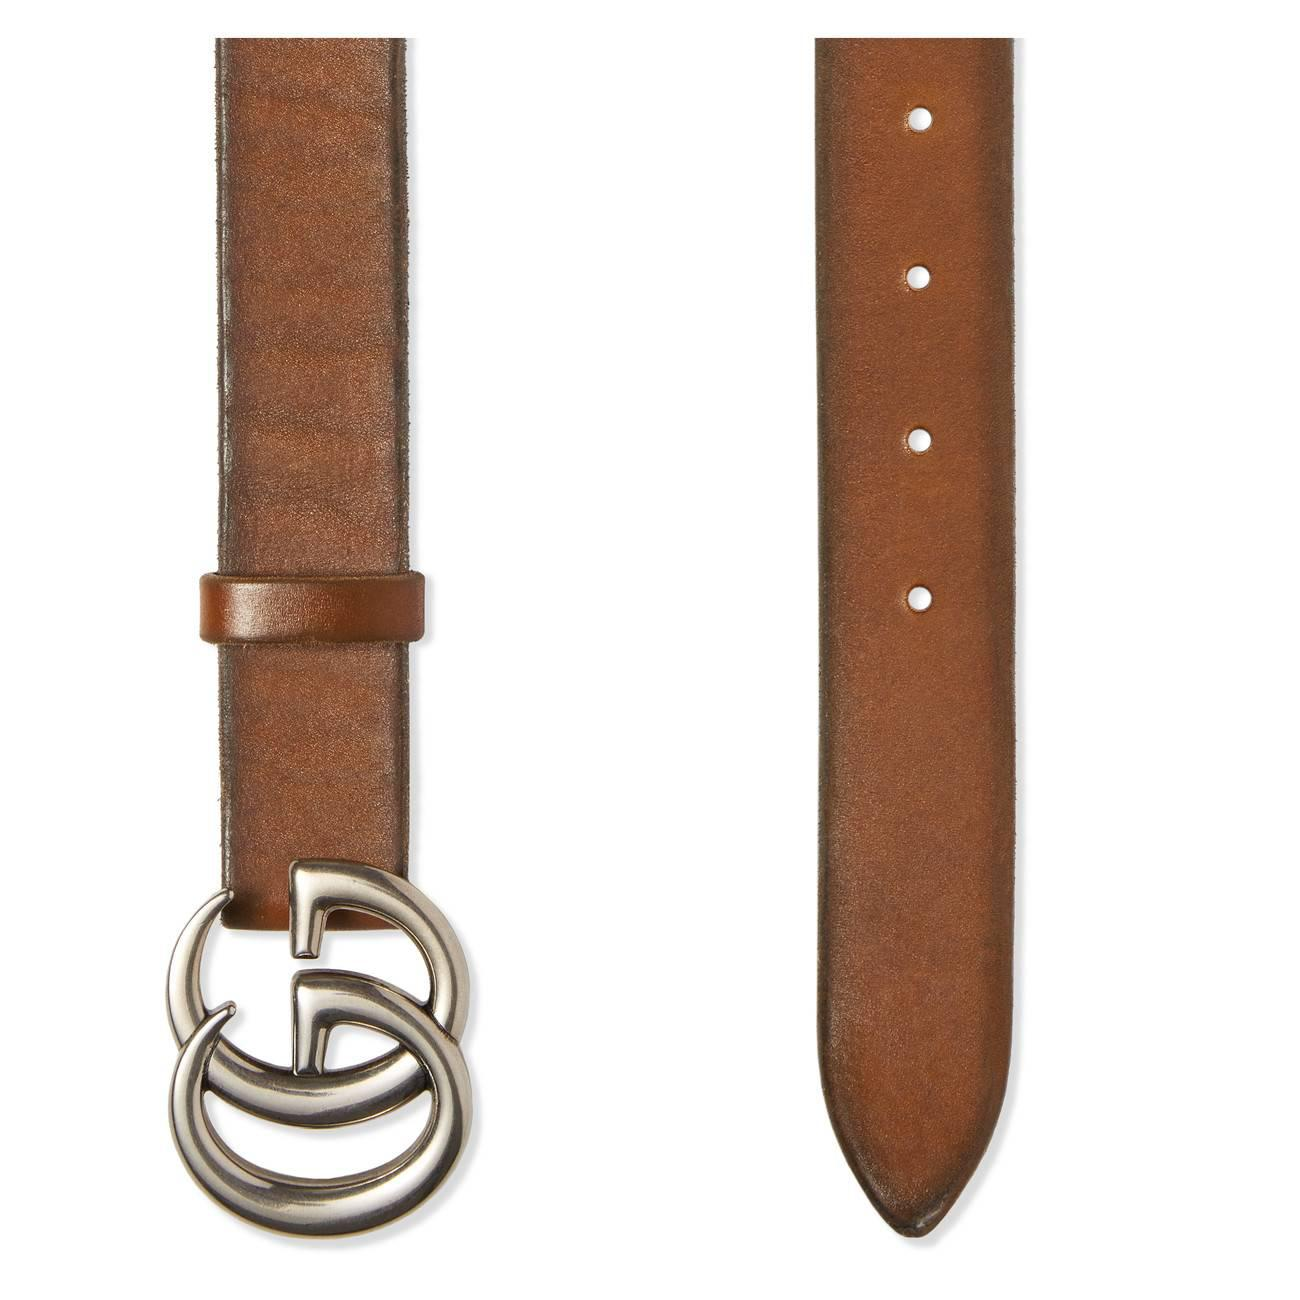 44659e0af94 Gucci - Brown Leather Belt With Double G Buckle for Men - Lyst. View  fullscreen